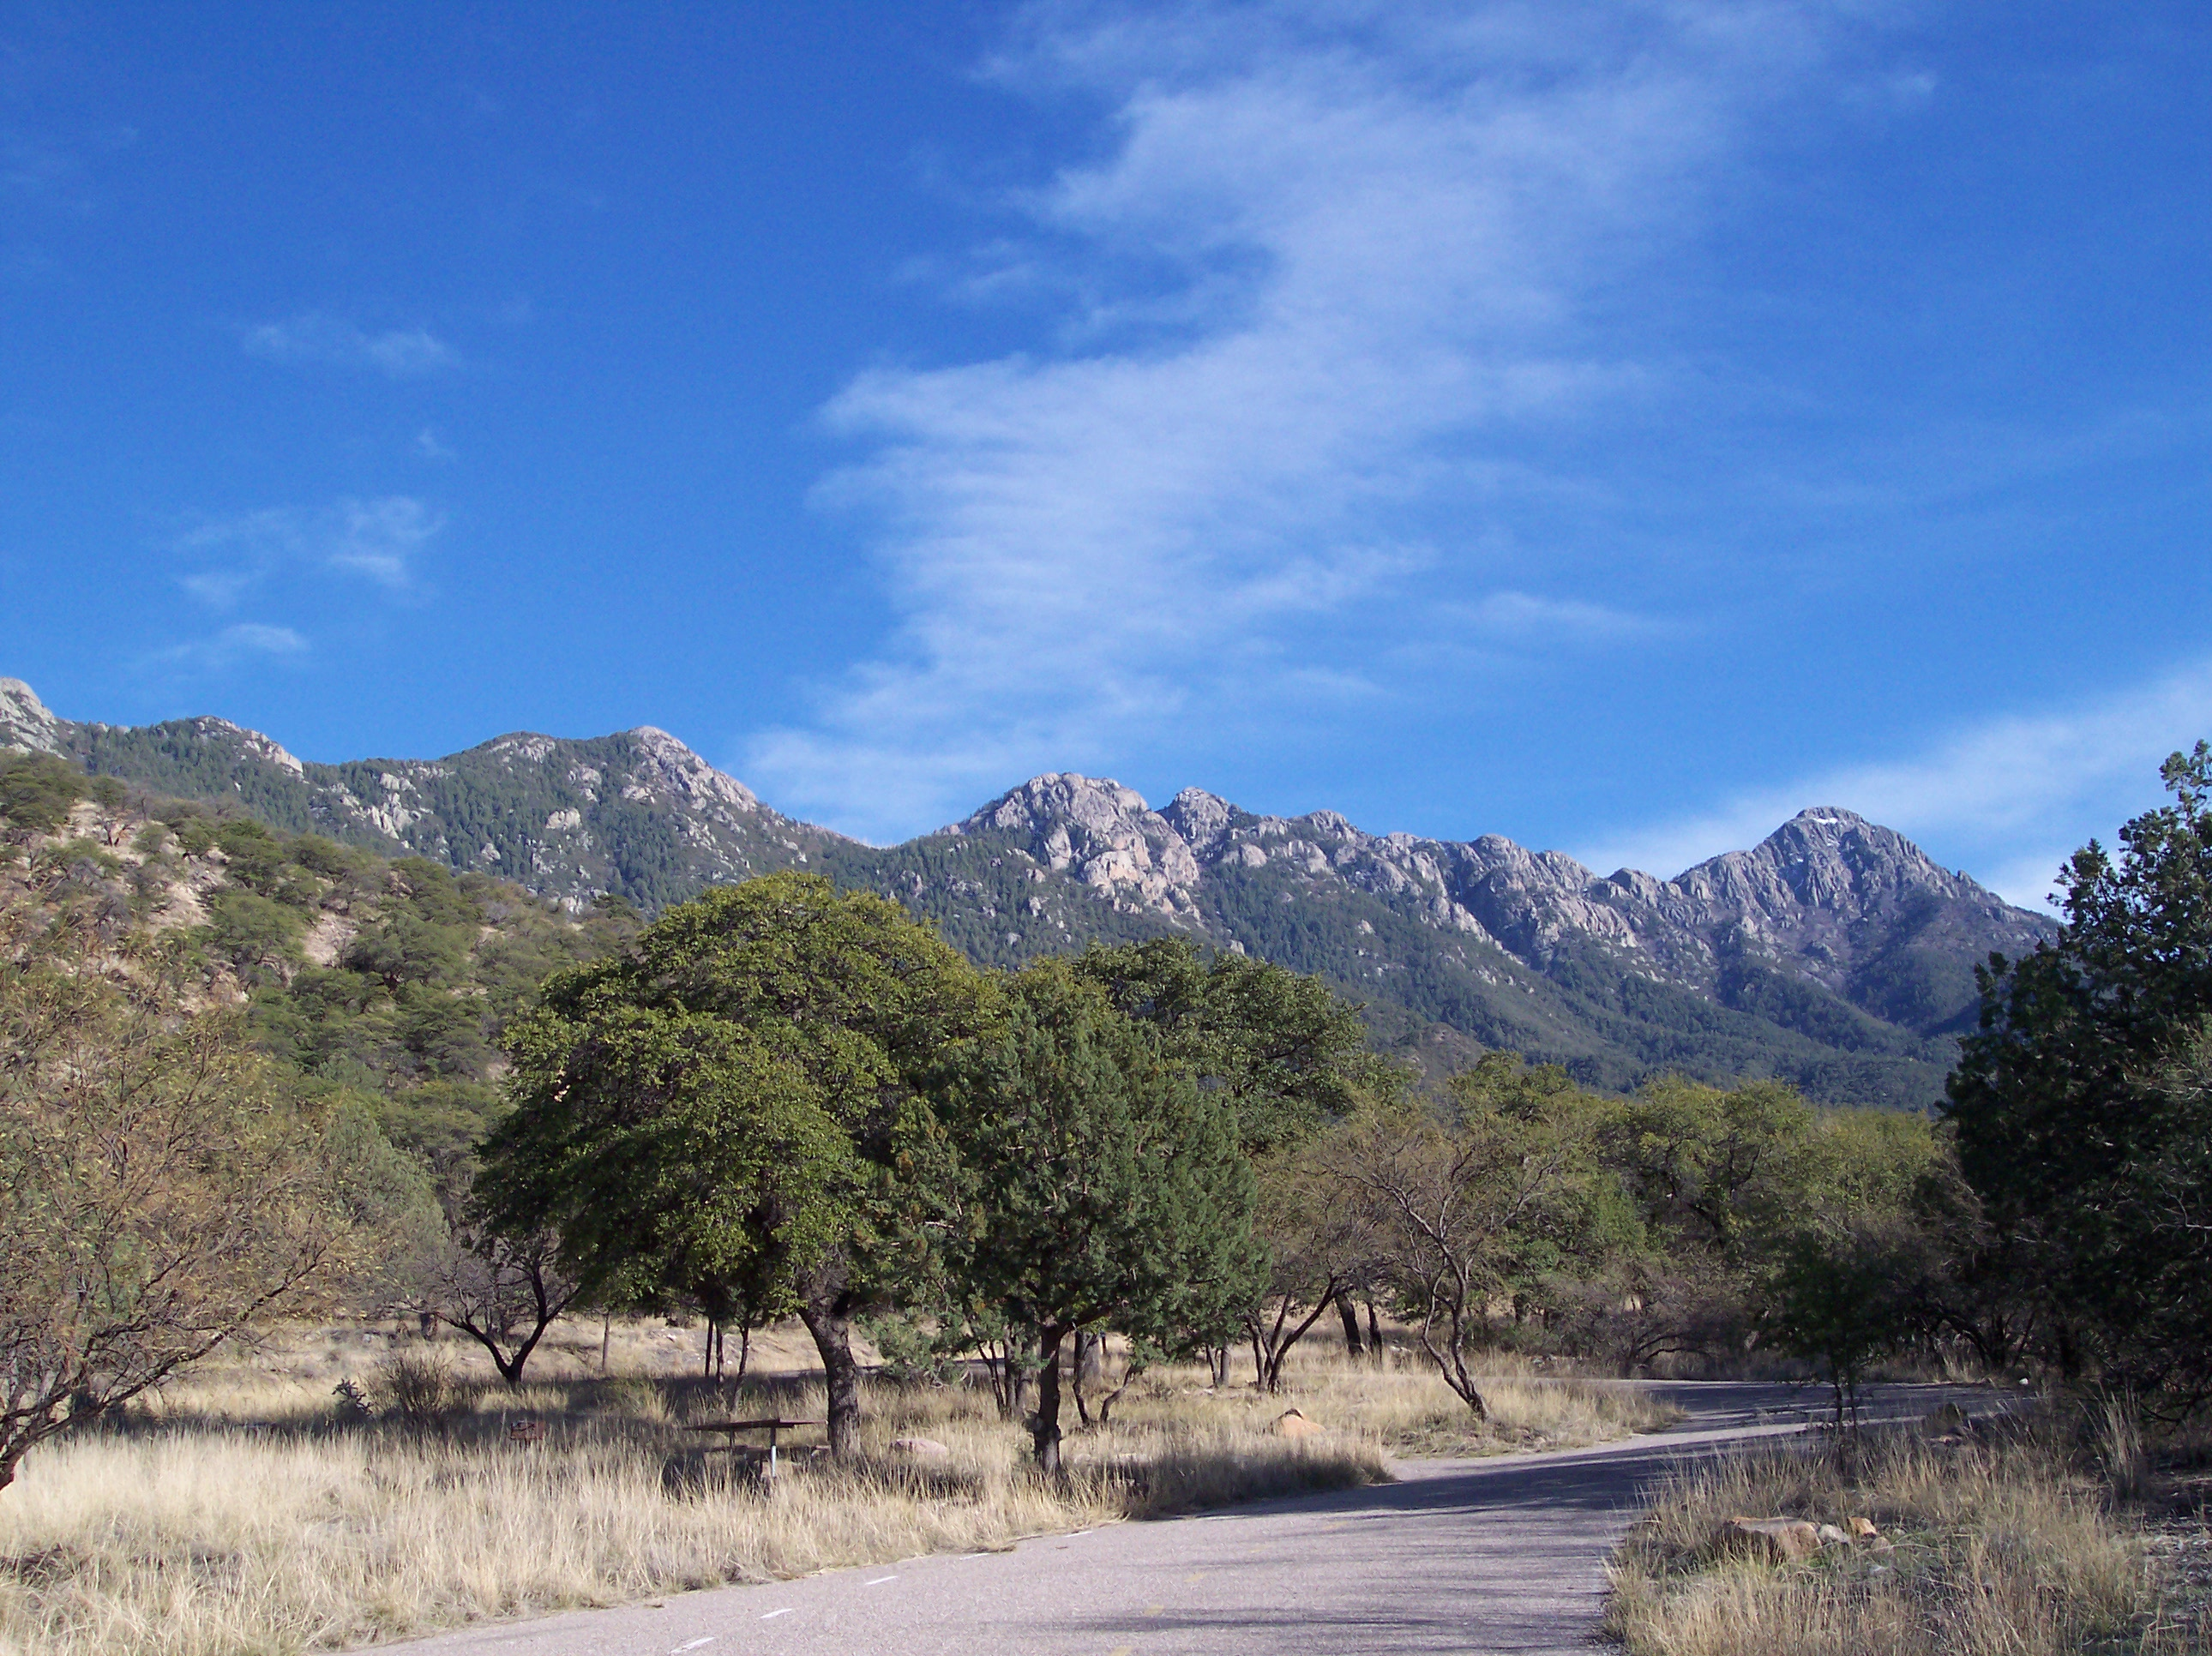 April 2017 Backpacking Trip in the Santa Rita Mountains ...